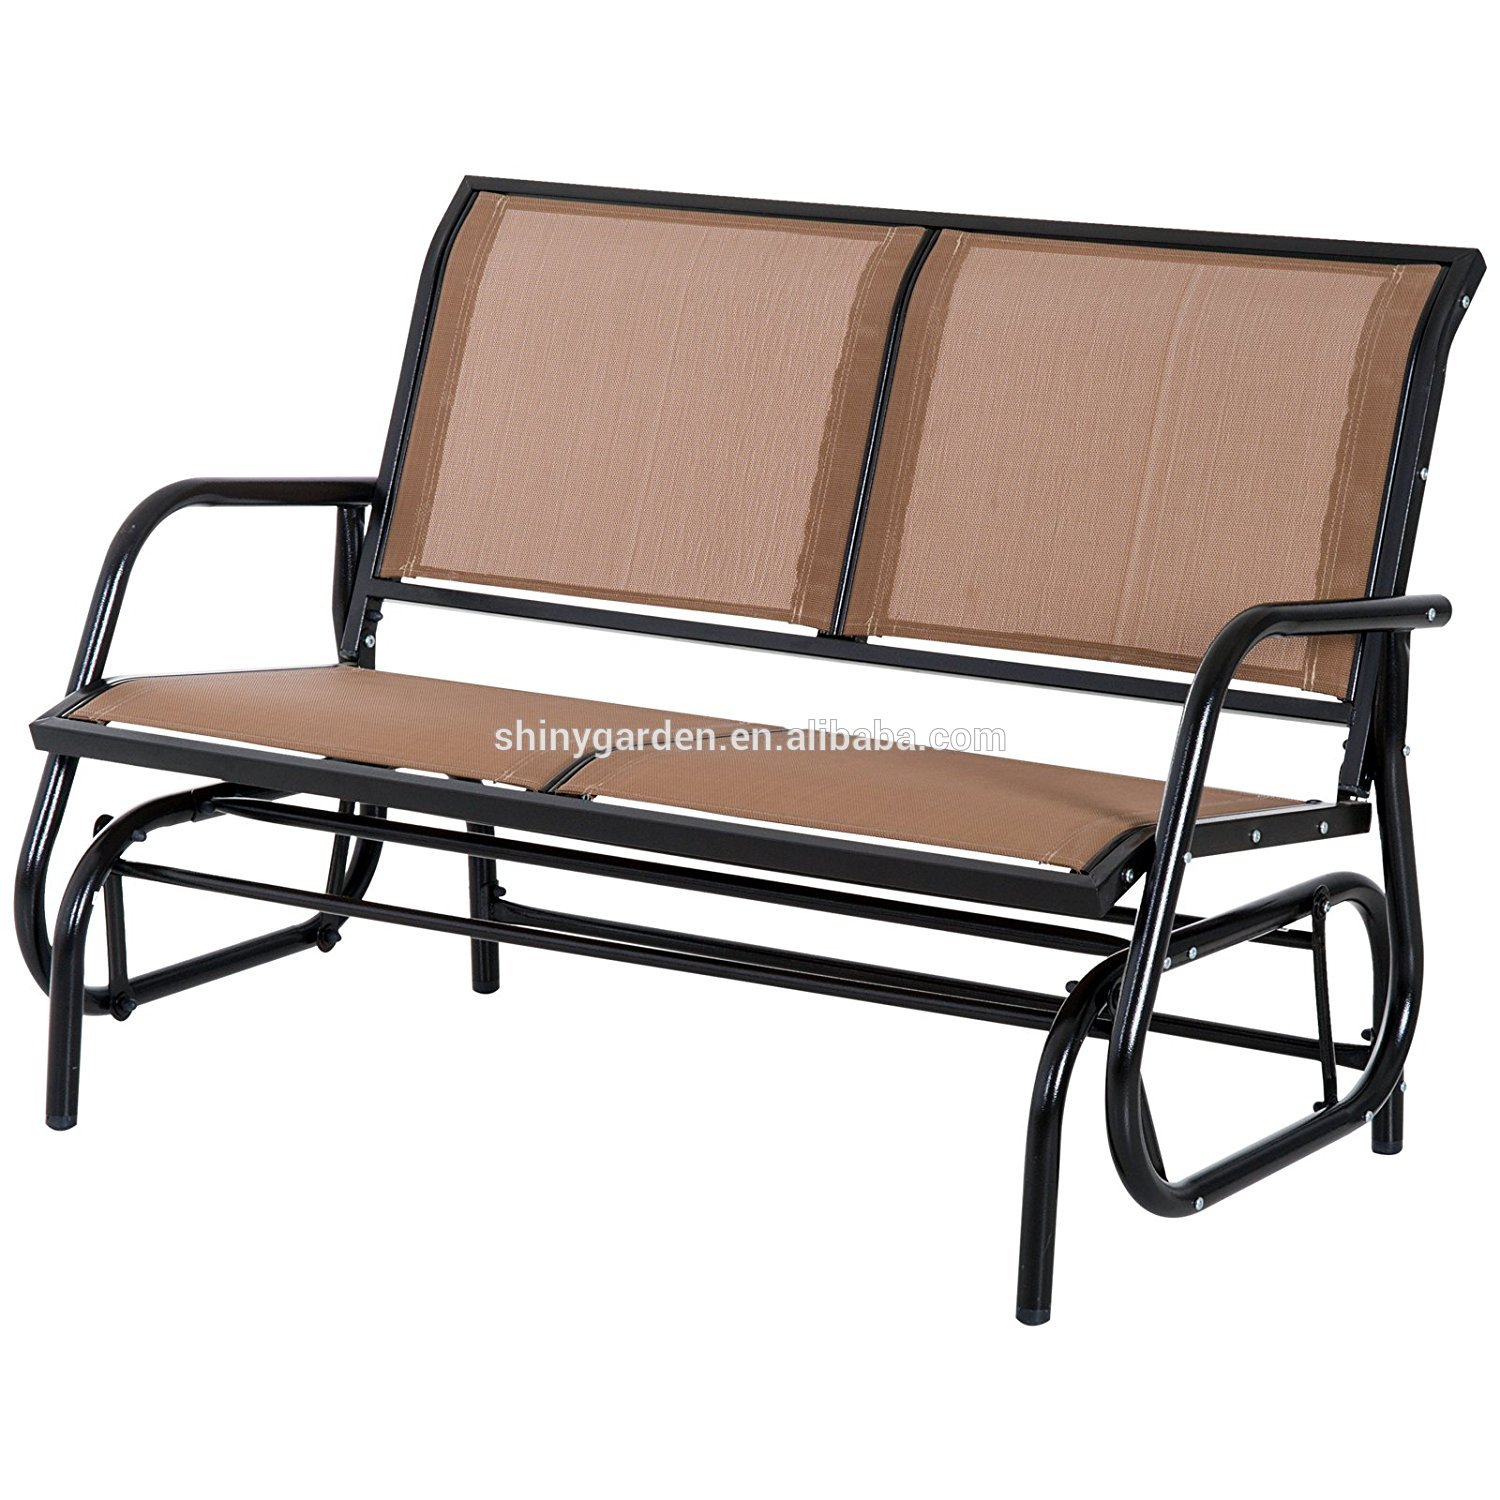 Outdoor Swing Glider Chair,patio Bench For 2 Person,garden Rocking Seating  – Buy Swing Glider Chair Product On Alibaba In Outdoor Patio Swing Glider Bench Chairs (View 6 of 25)